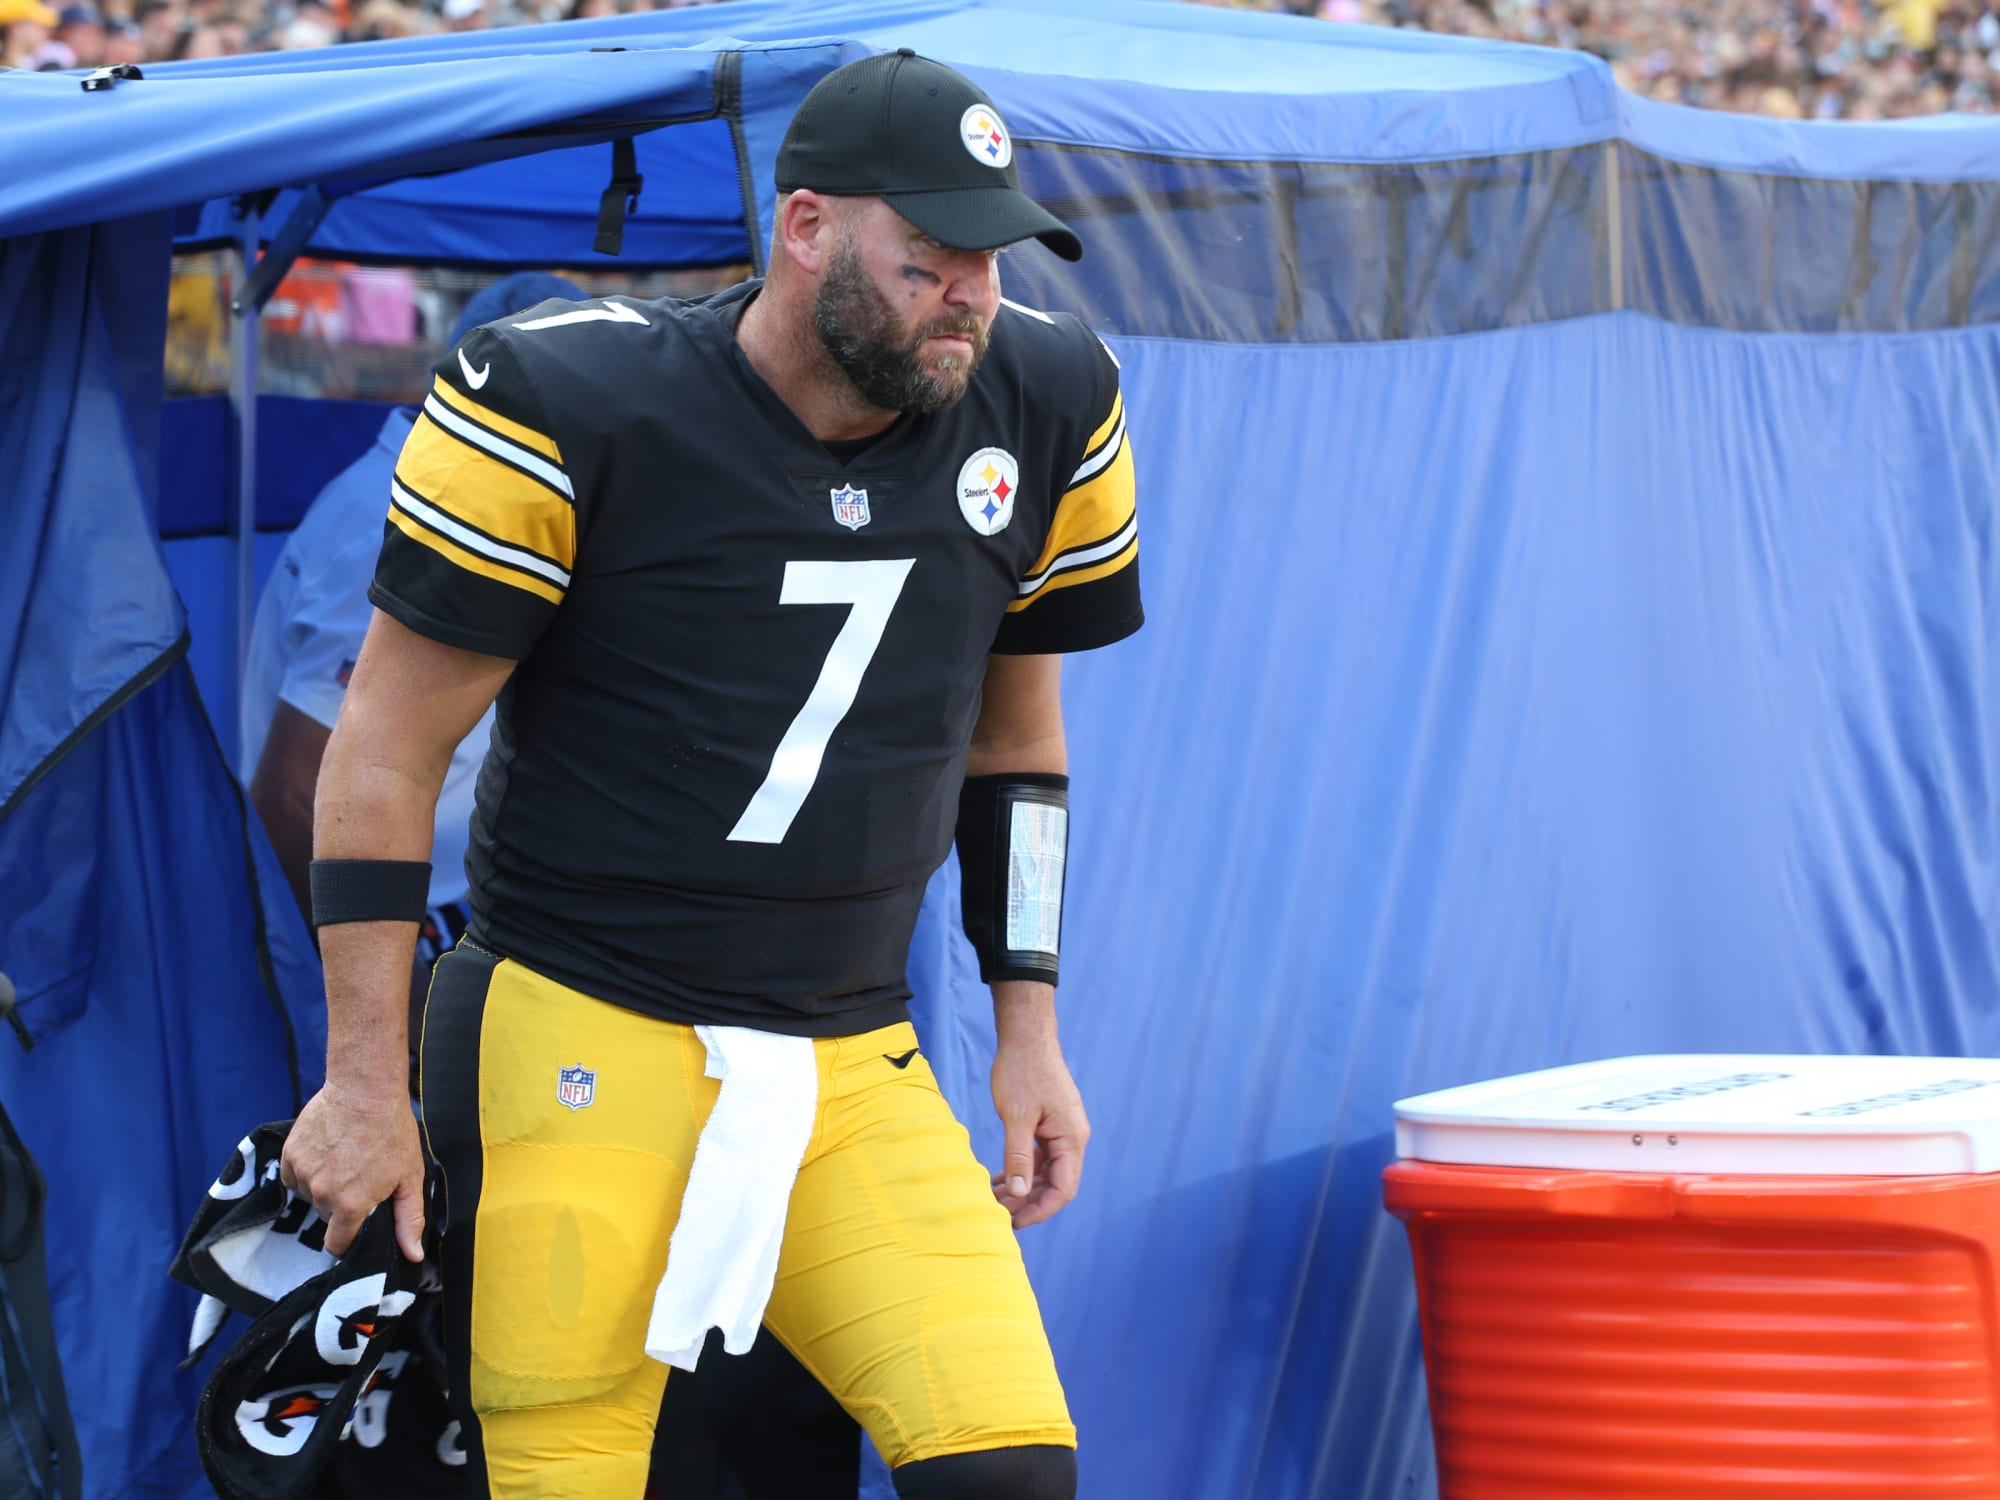 Steelers ideal replacement for Ben Roethlisberger becoming clearer by the day